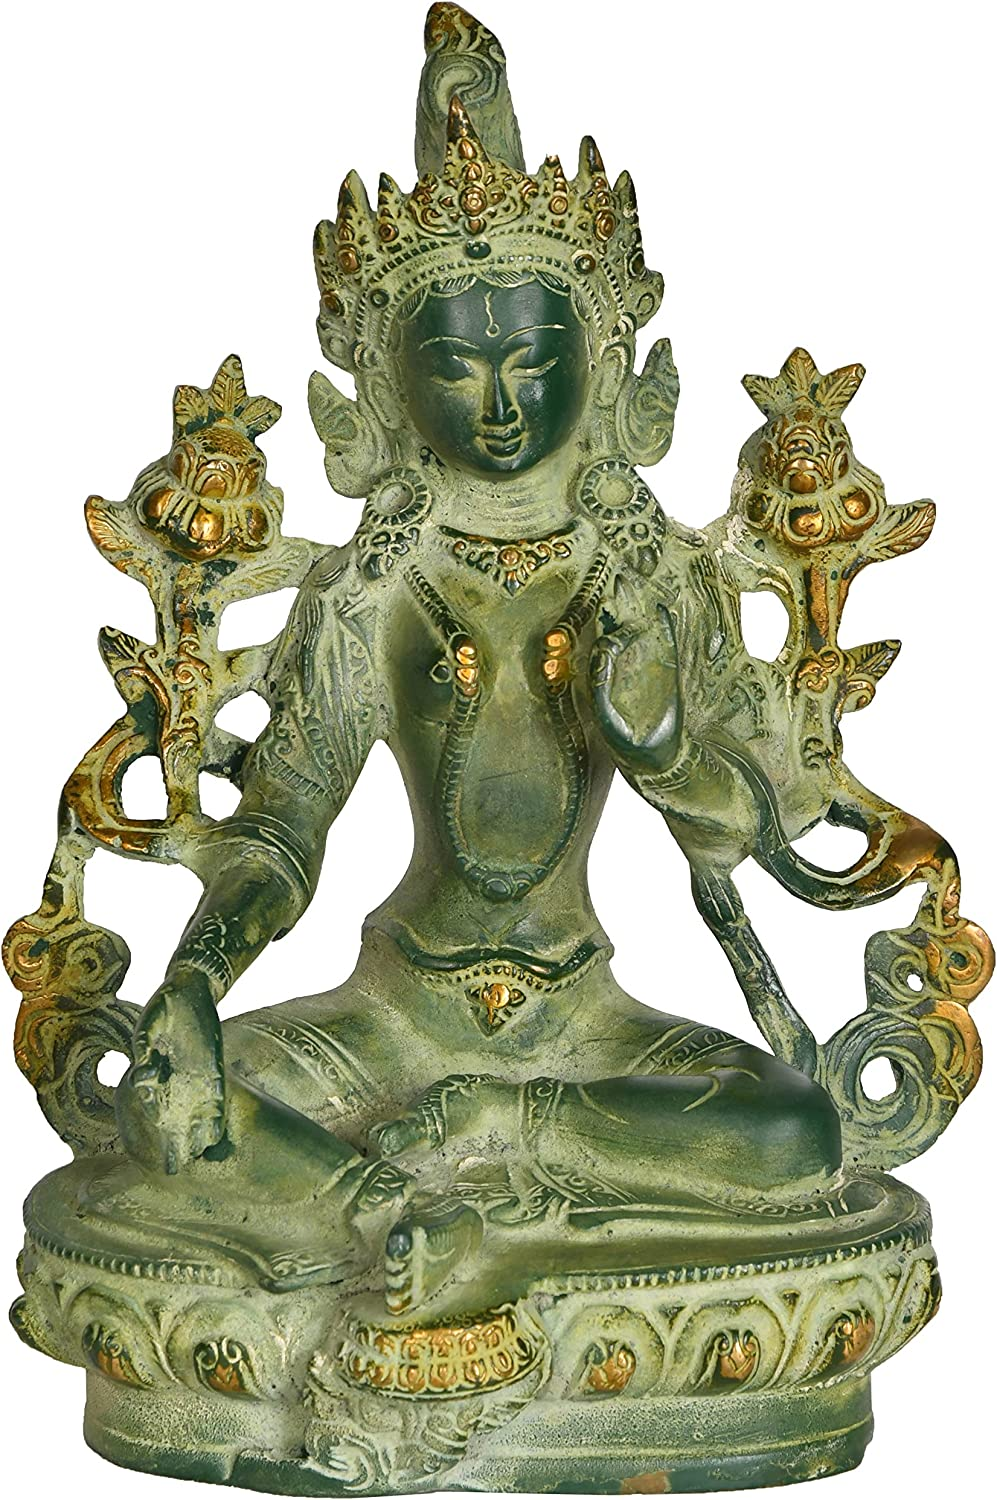 Exotic India Green Tara, Who Saves You (Tibetan Buddhist Deity) - Brass Statue - Color Green Chola Color